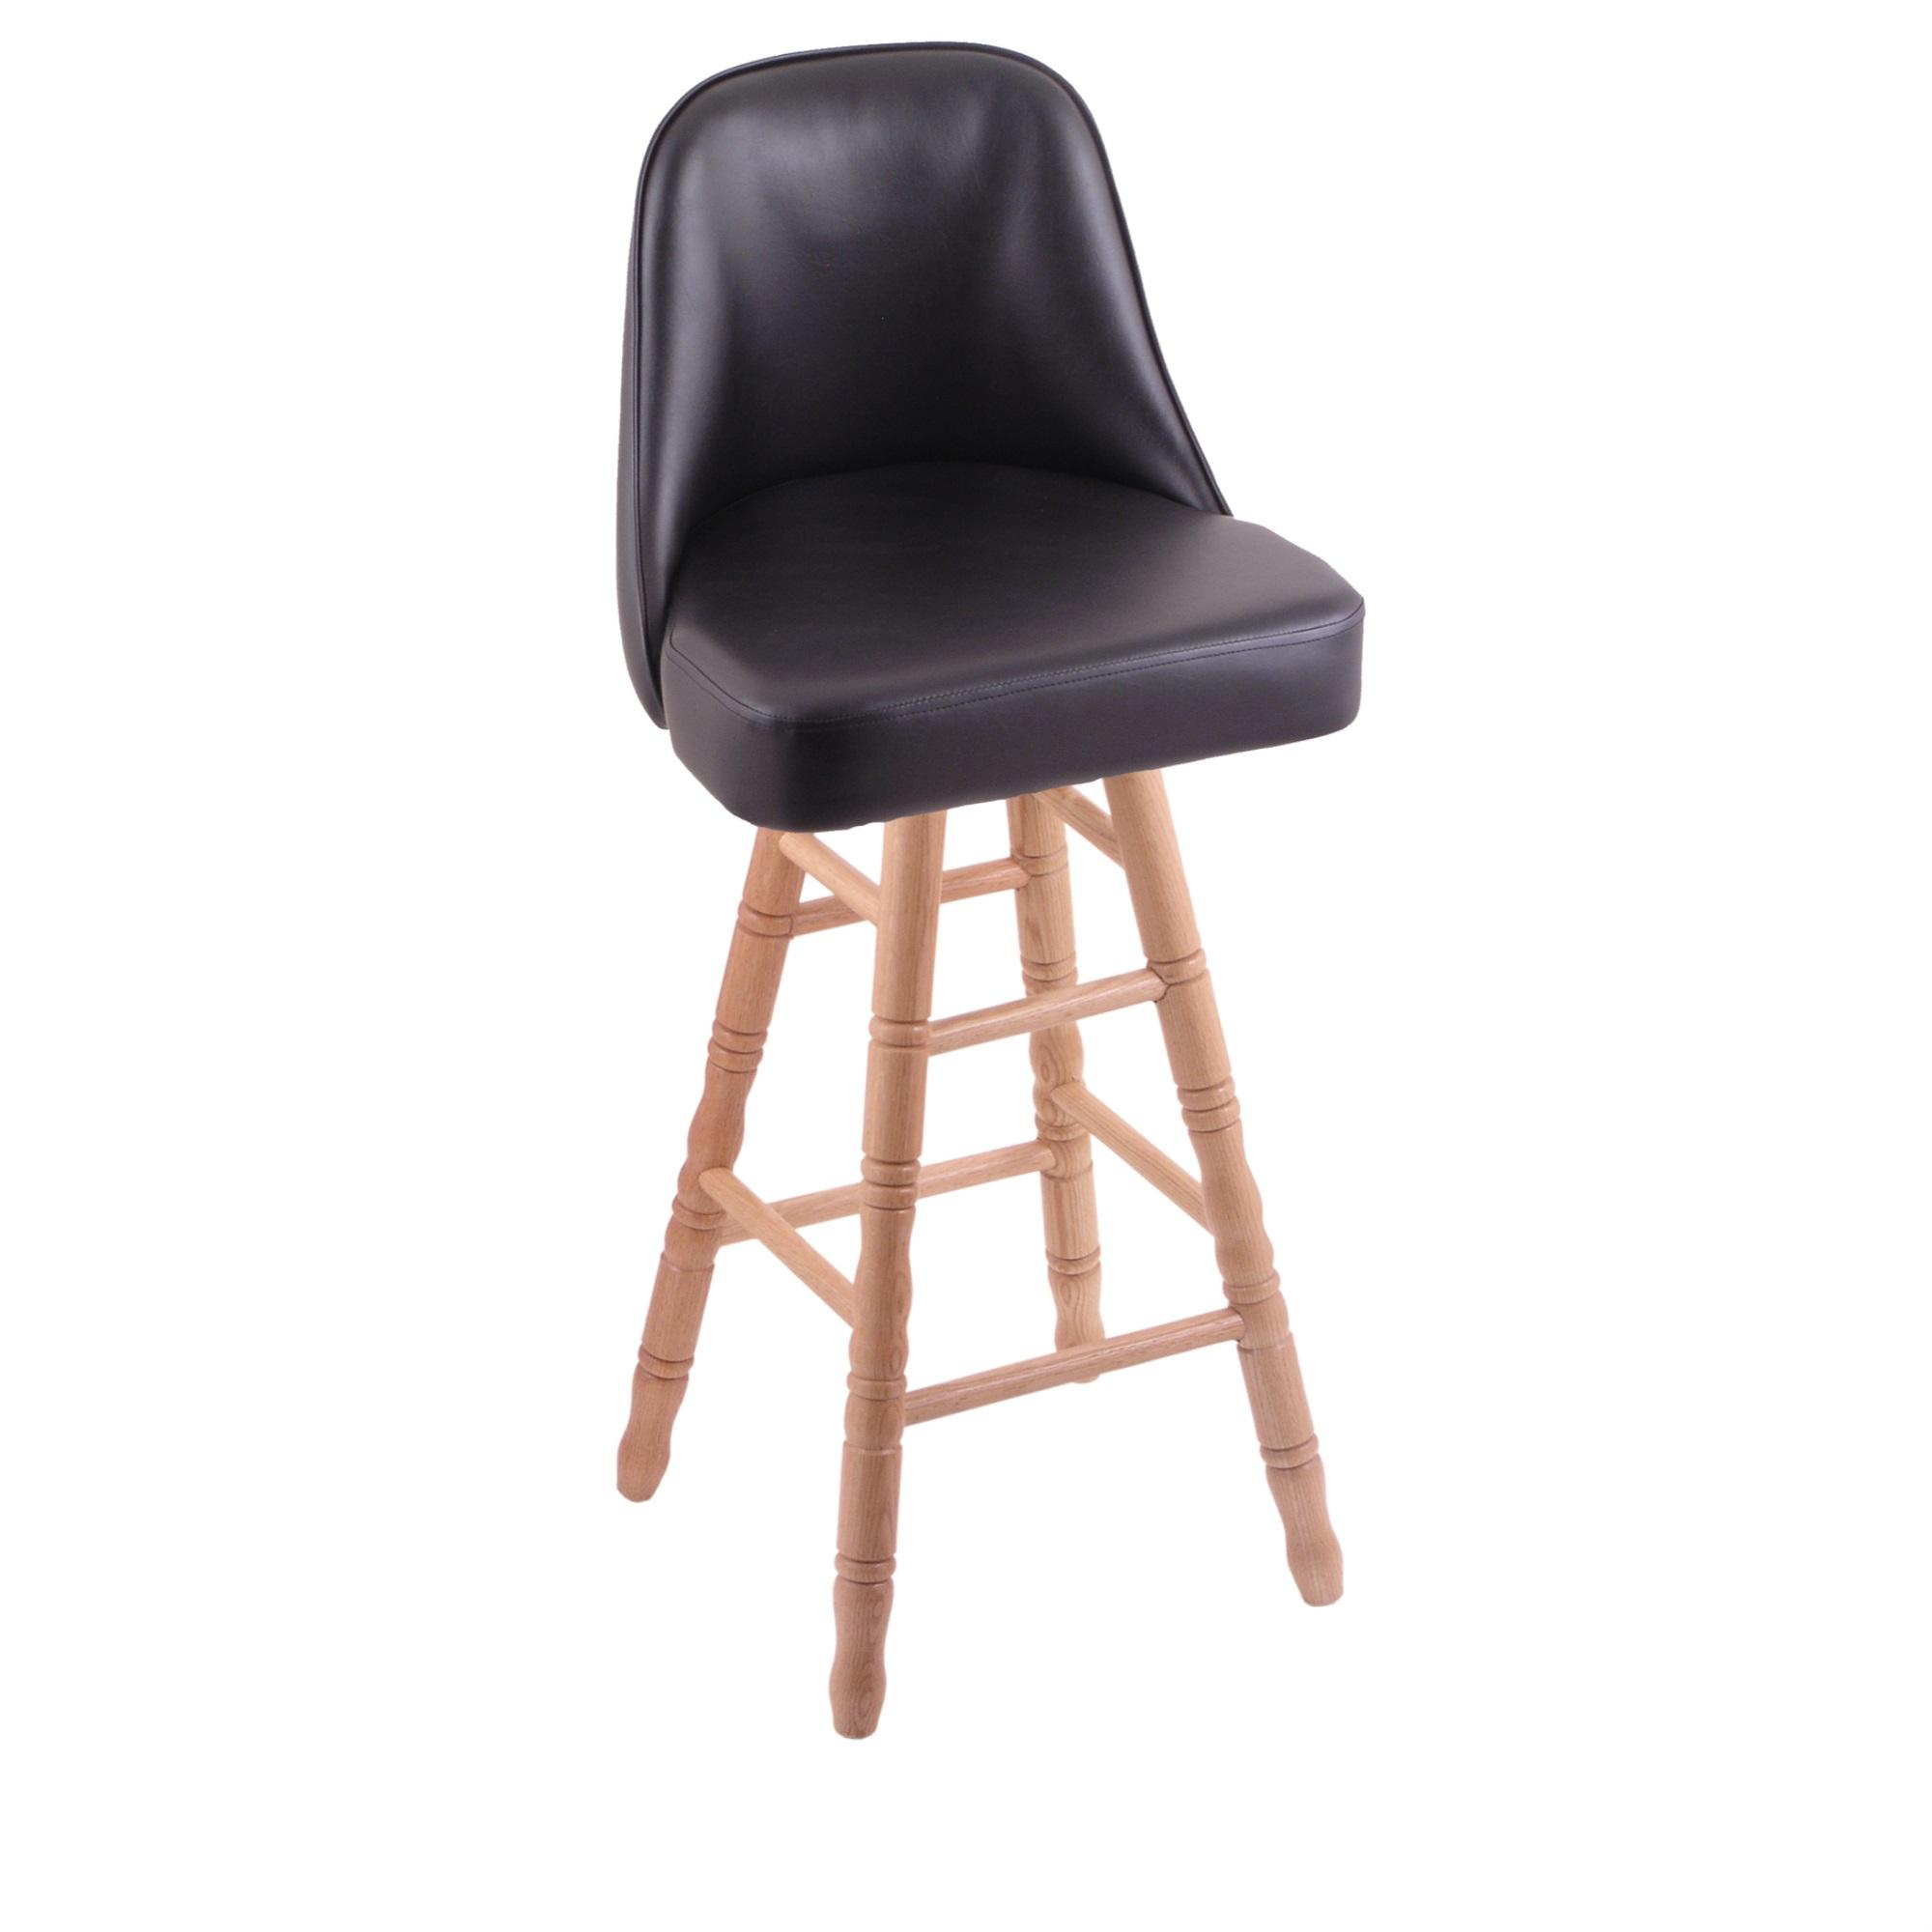 Grizzly Counter Stool with Turned Oak Legs, Natural Finish, and 360 Swivel